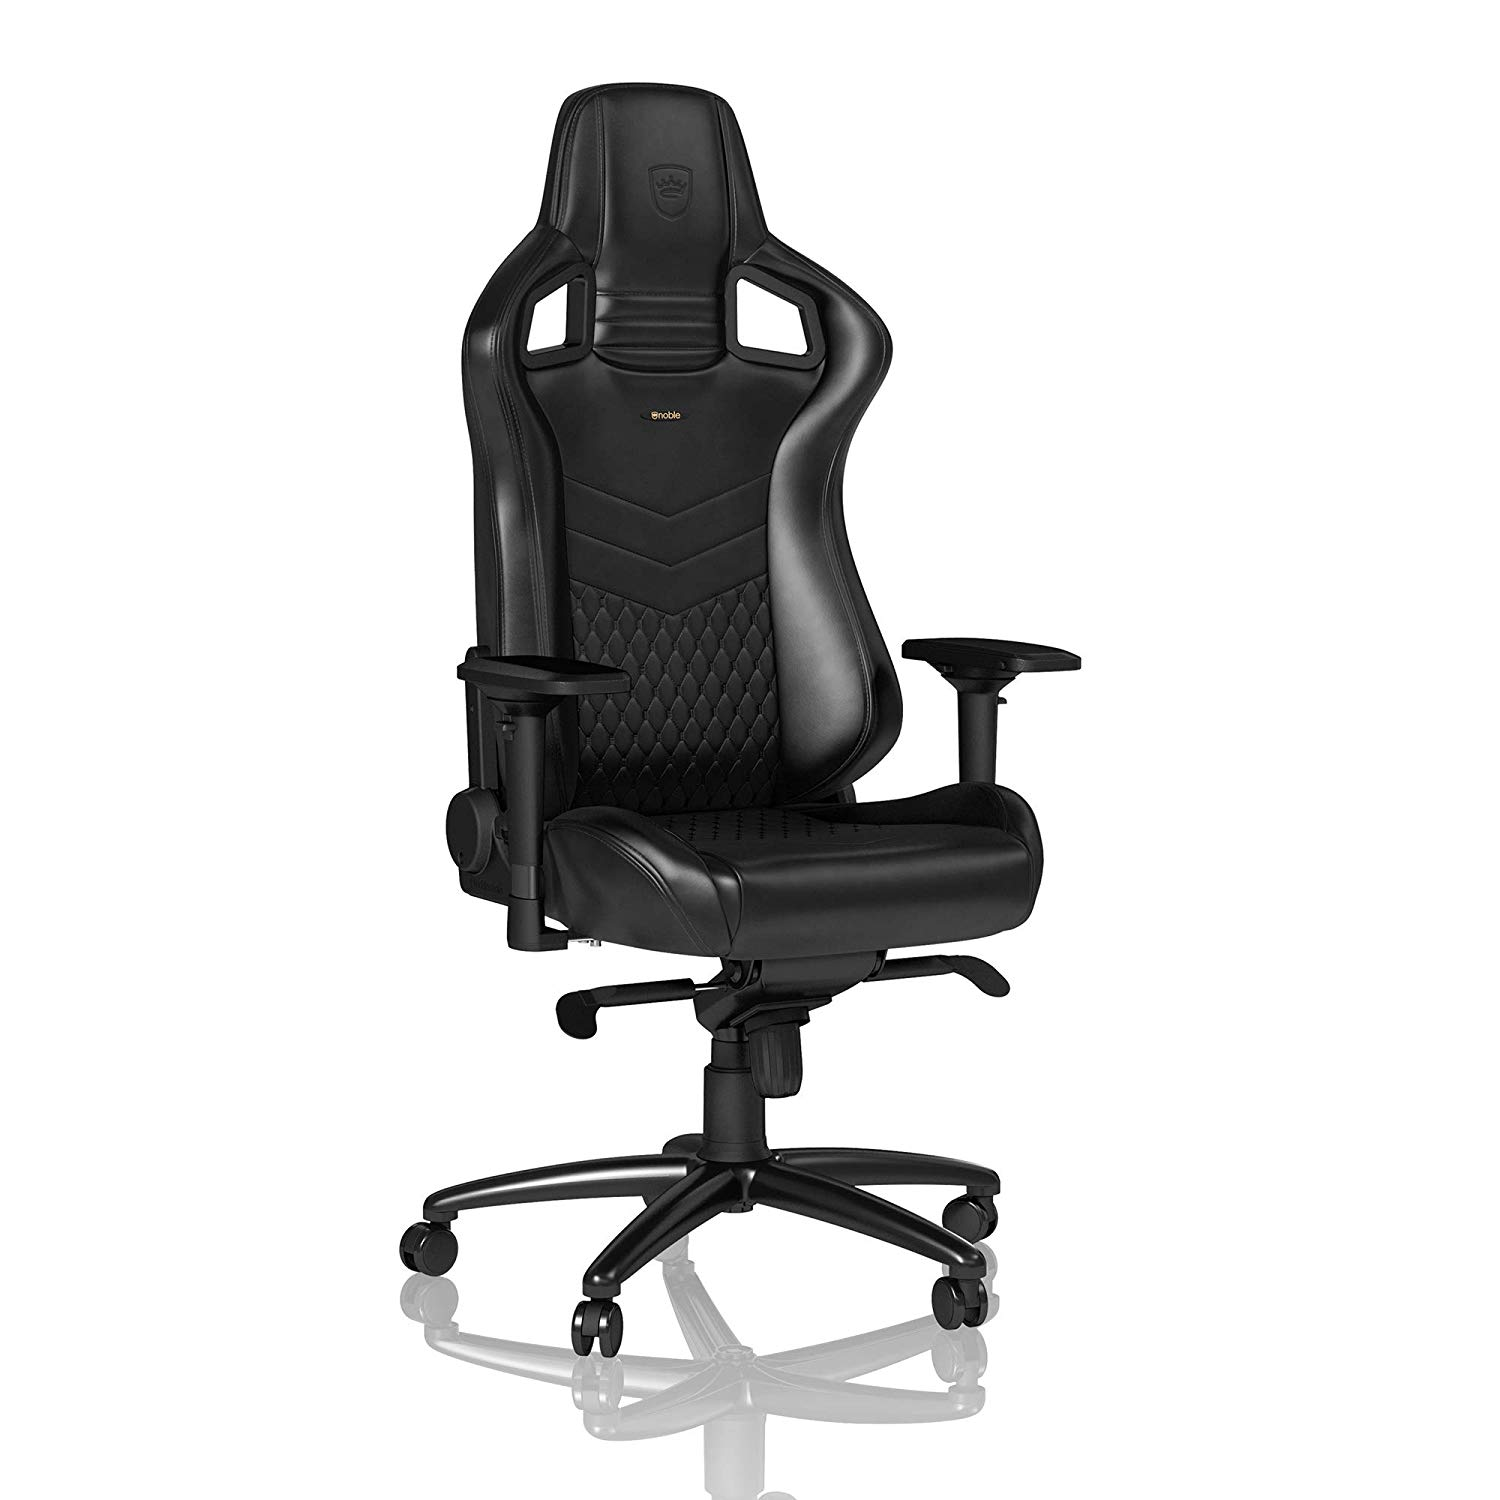 imperator works gaming chair design model top 10 most expensive chairs in the world 2019 reviews 6 noblechairs epic office desk nappa leather